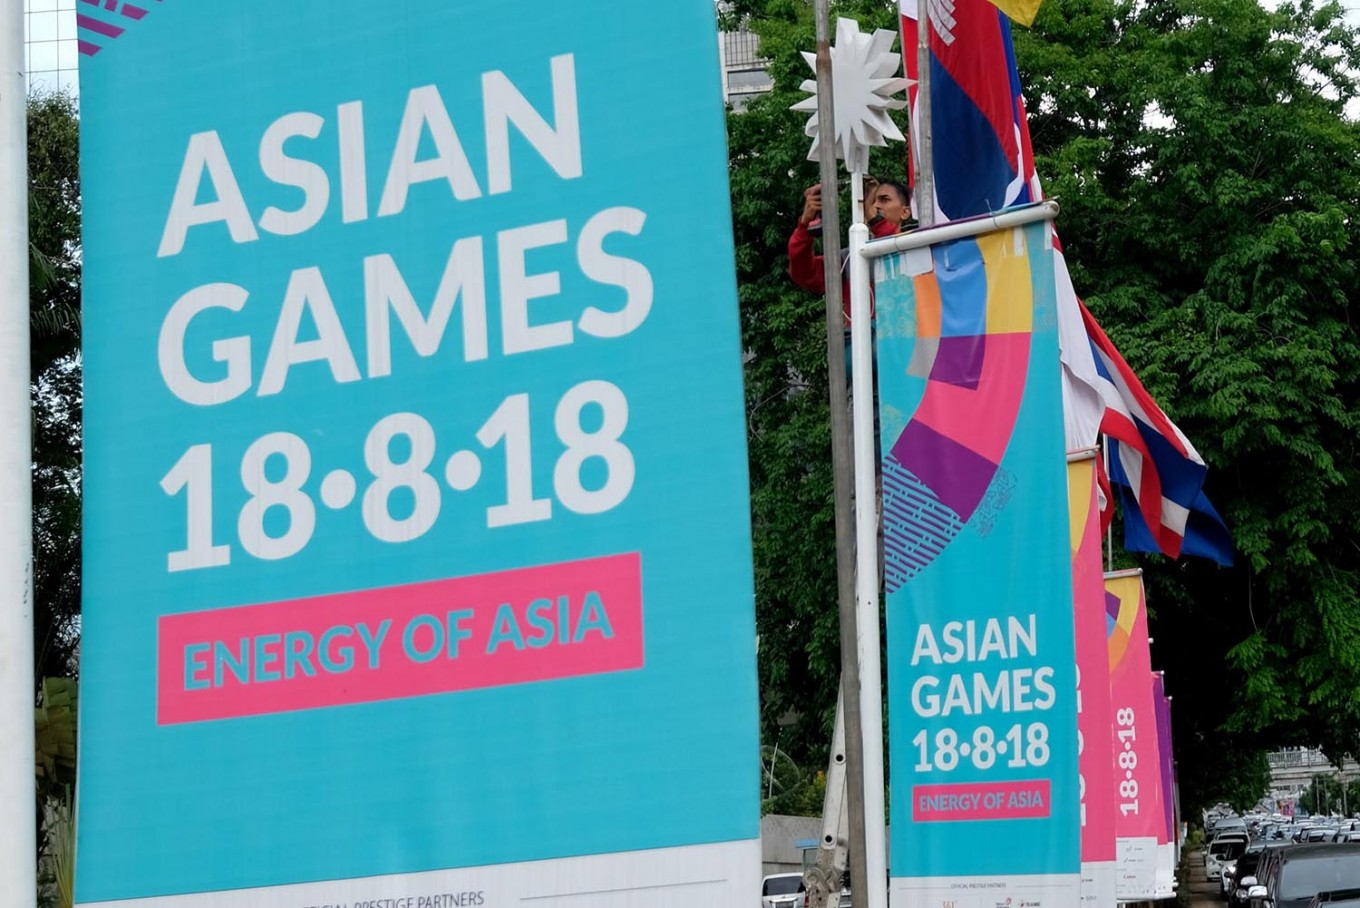 Retailers project 20% sales boost during Asian Games